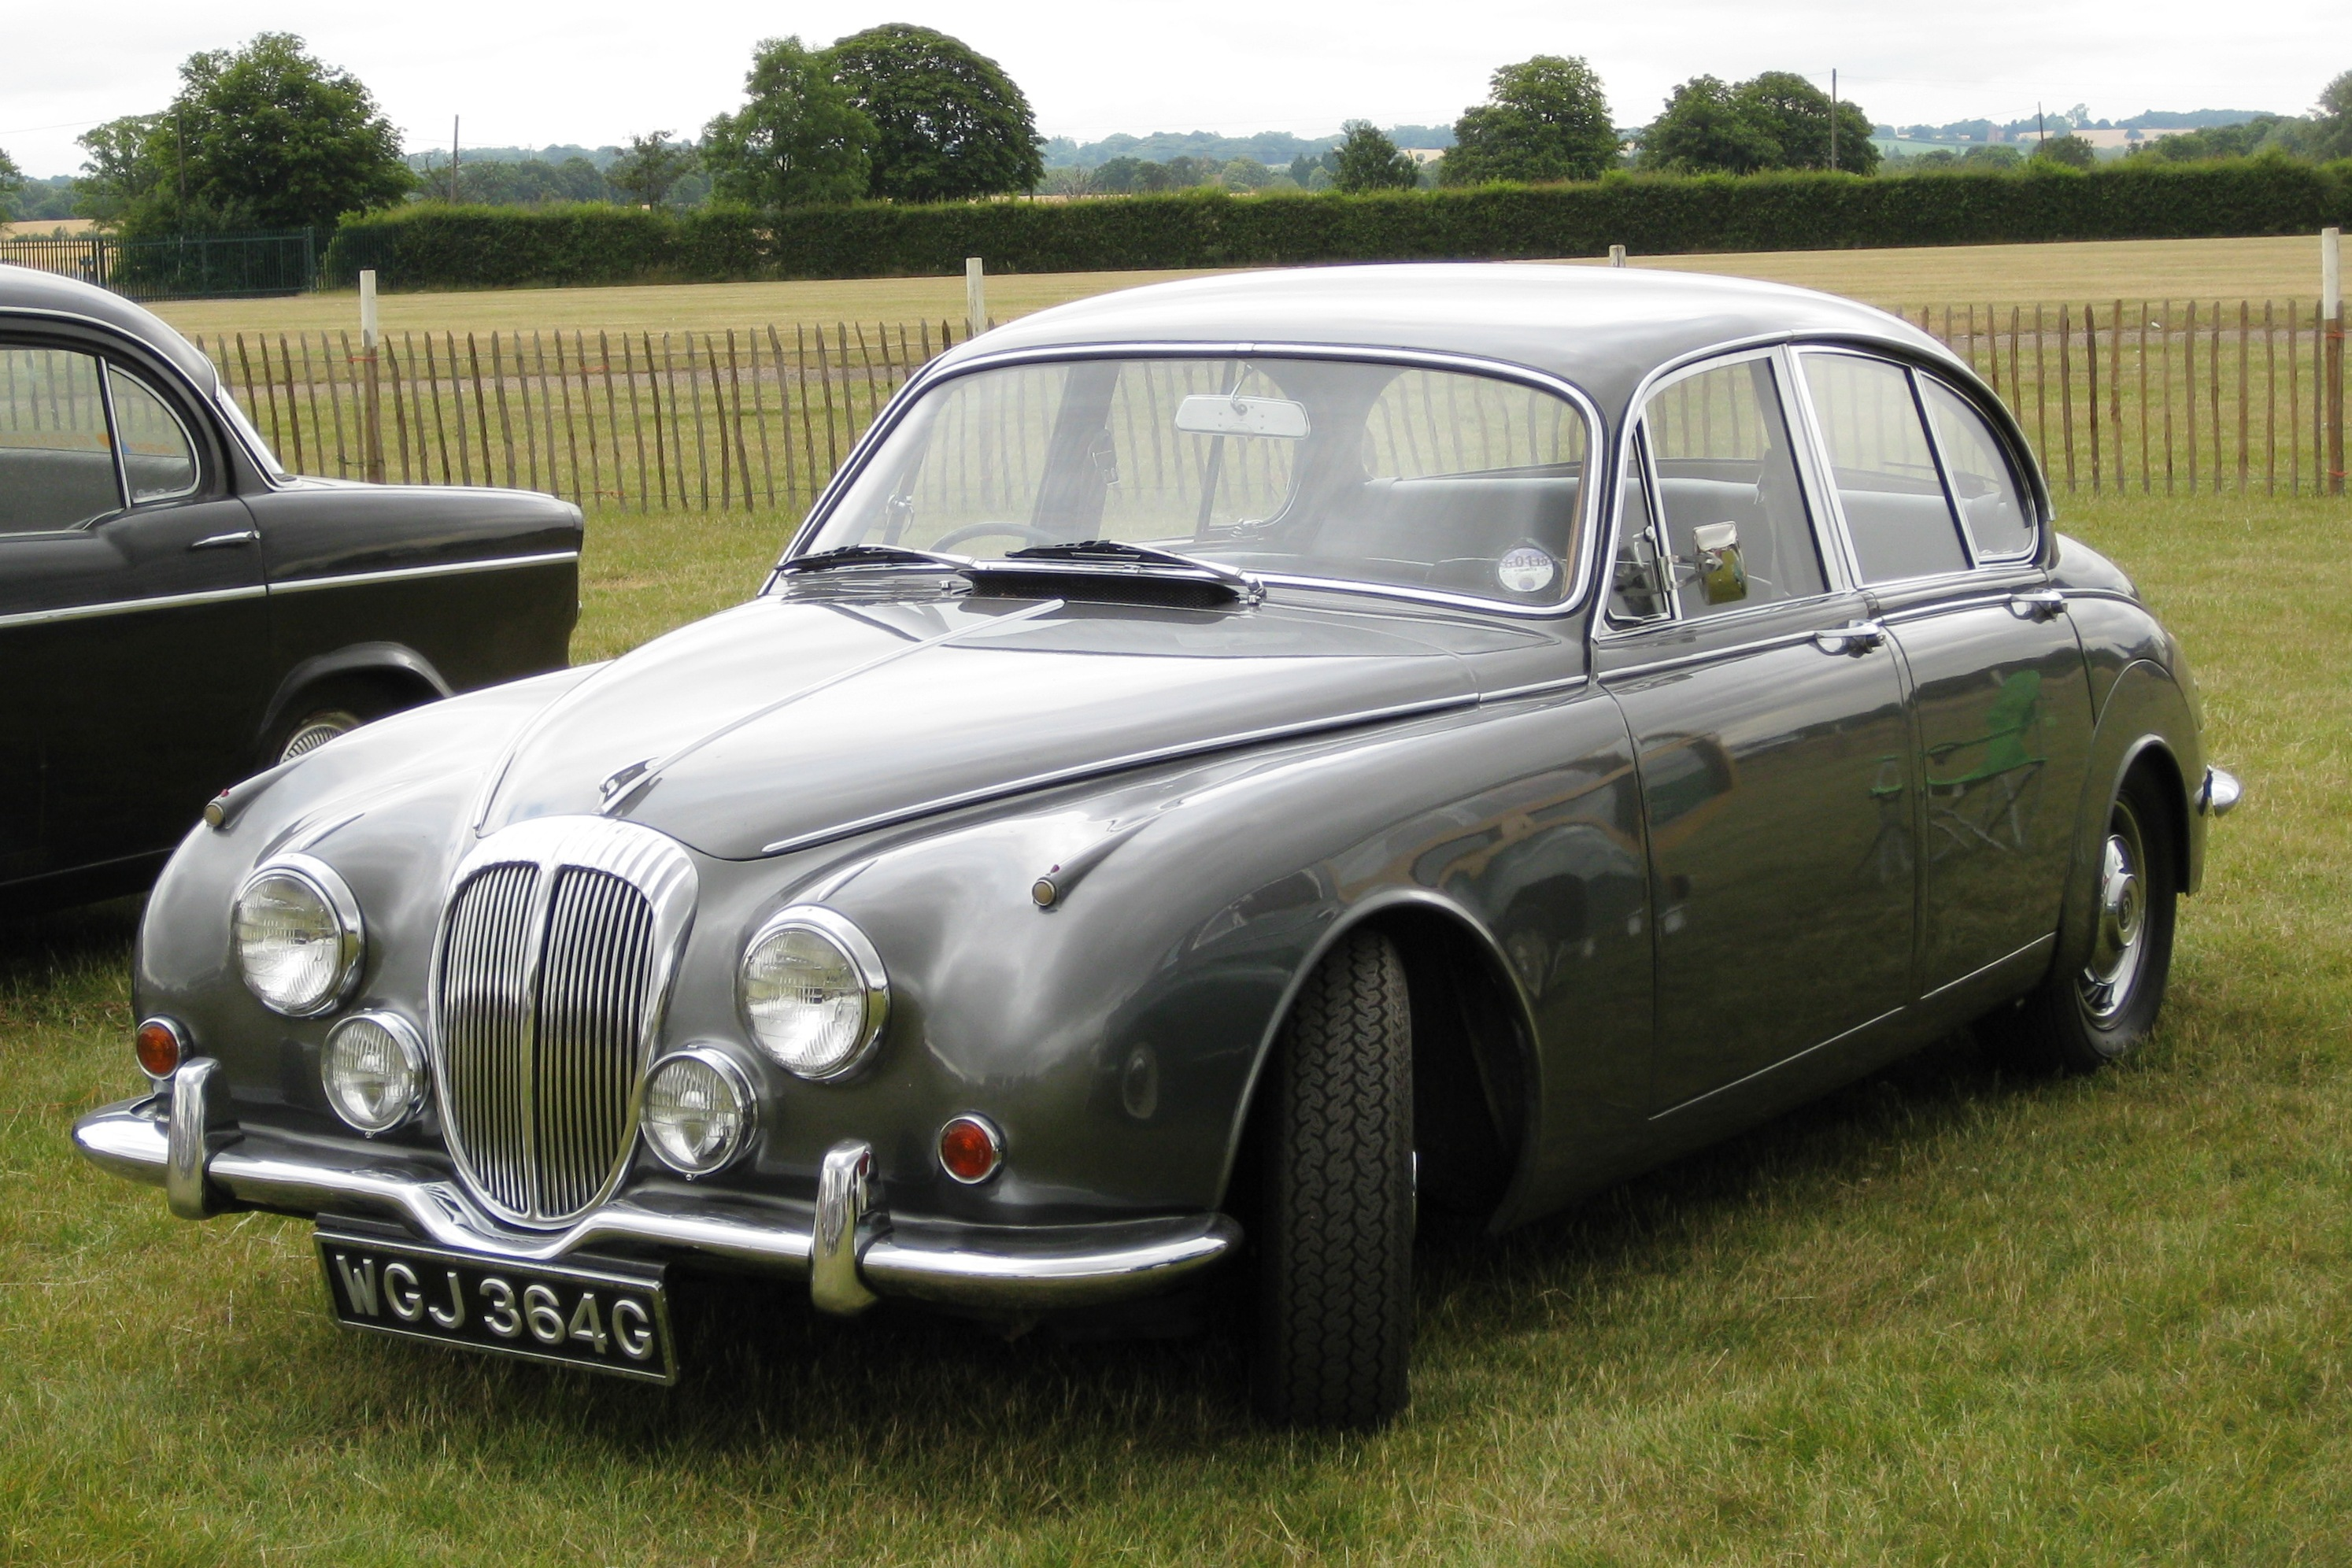 File:Daimler 250 2548 cc 17 sep 1968.JPG